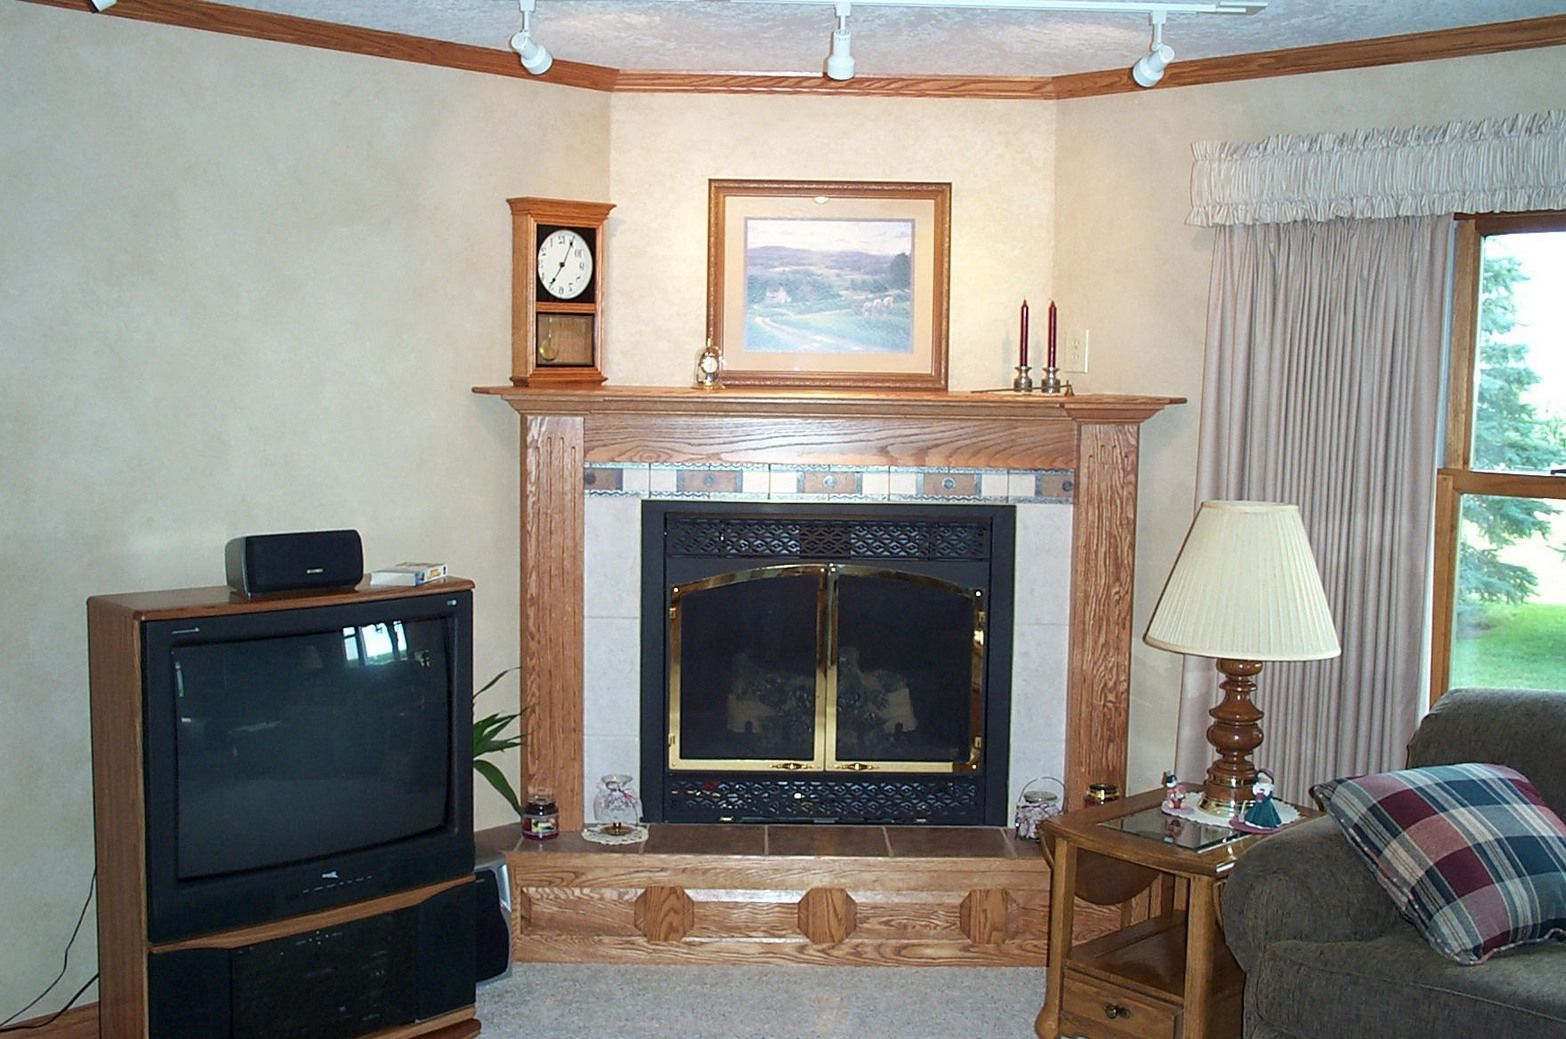 wood corner fireplace with tile and picture above in 2020 ...